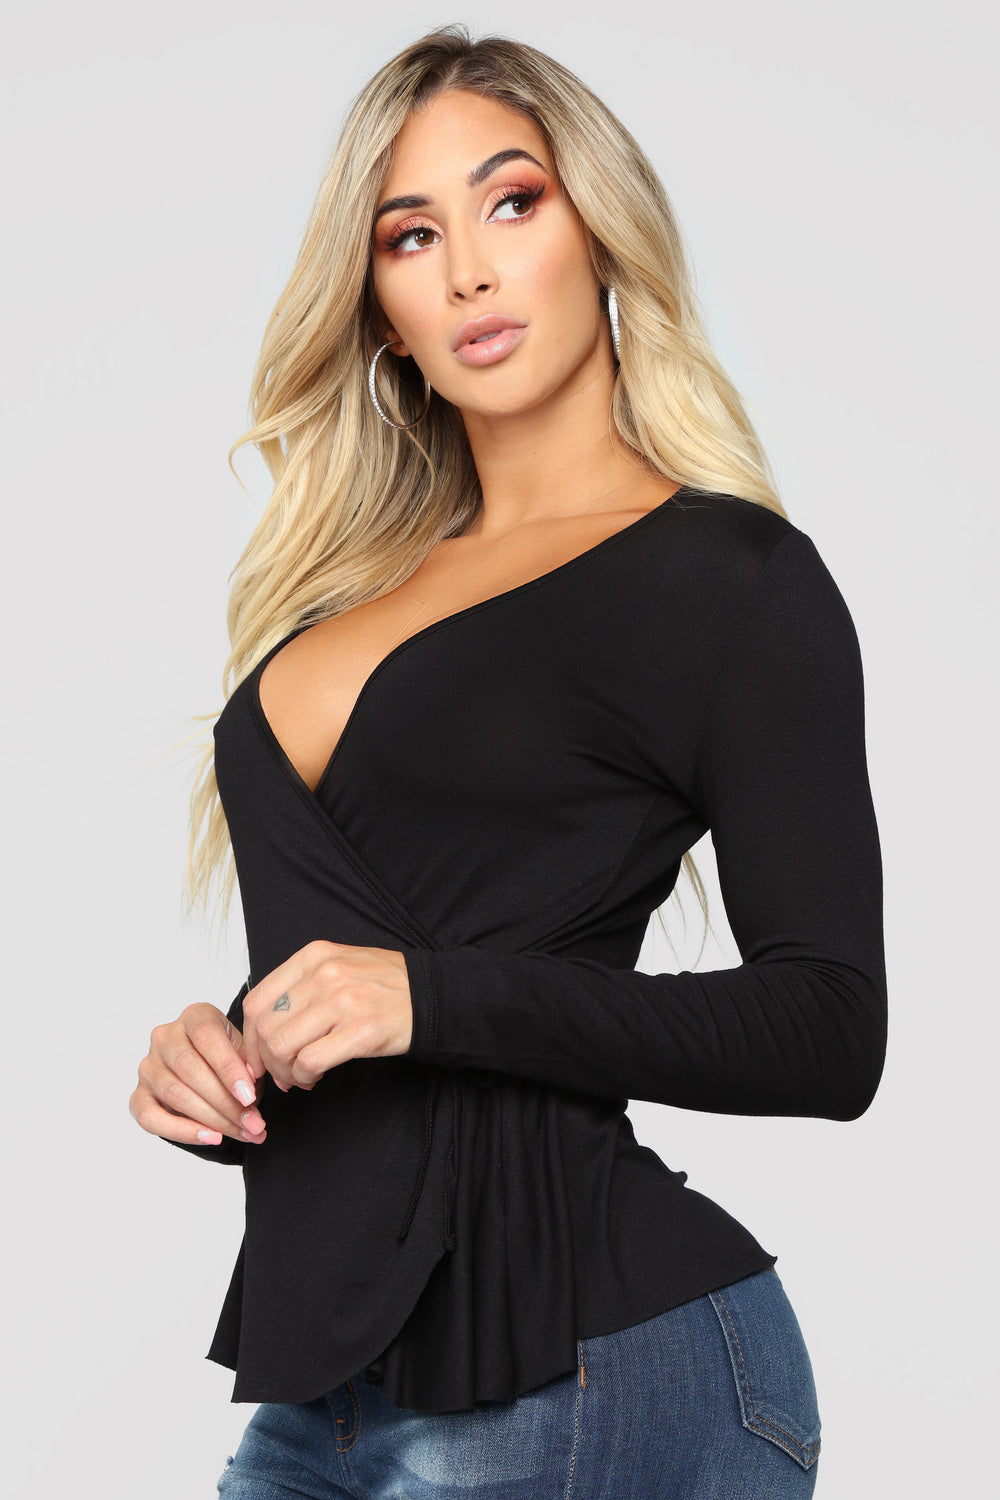 So Classic Long Sleeve Wrap Top - Black